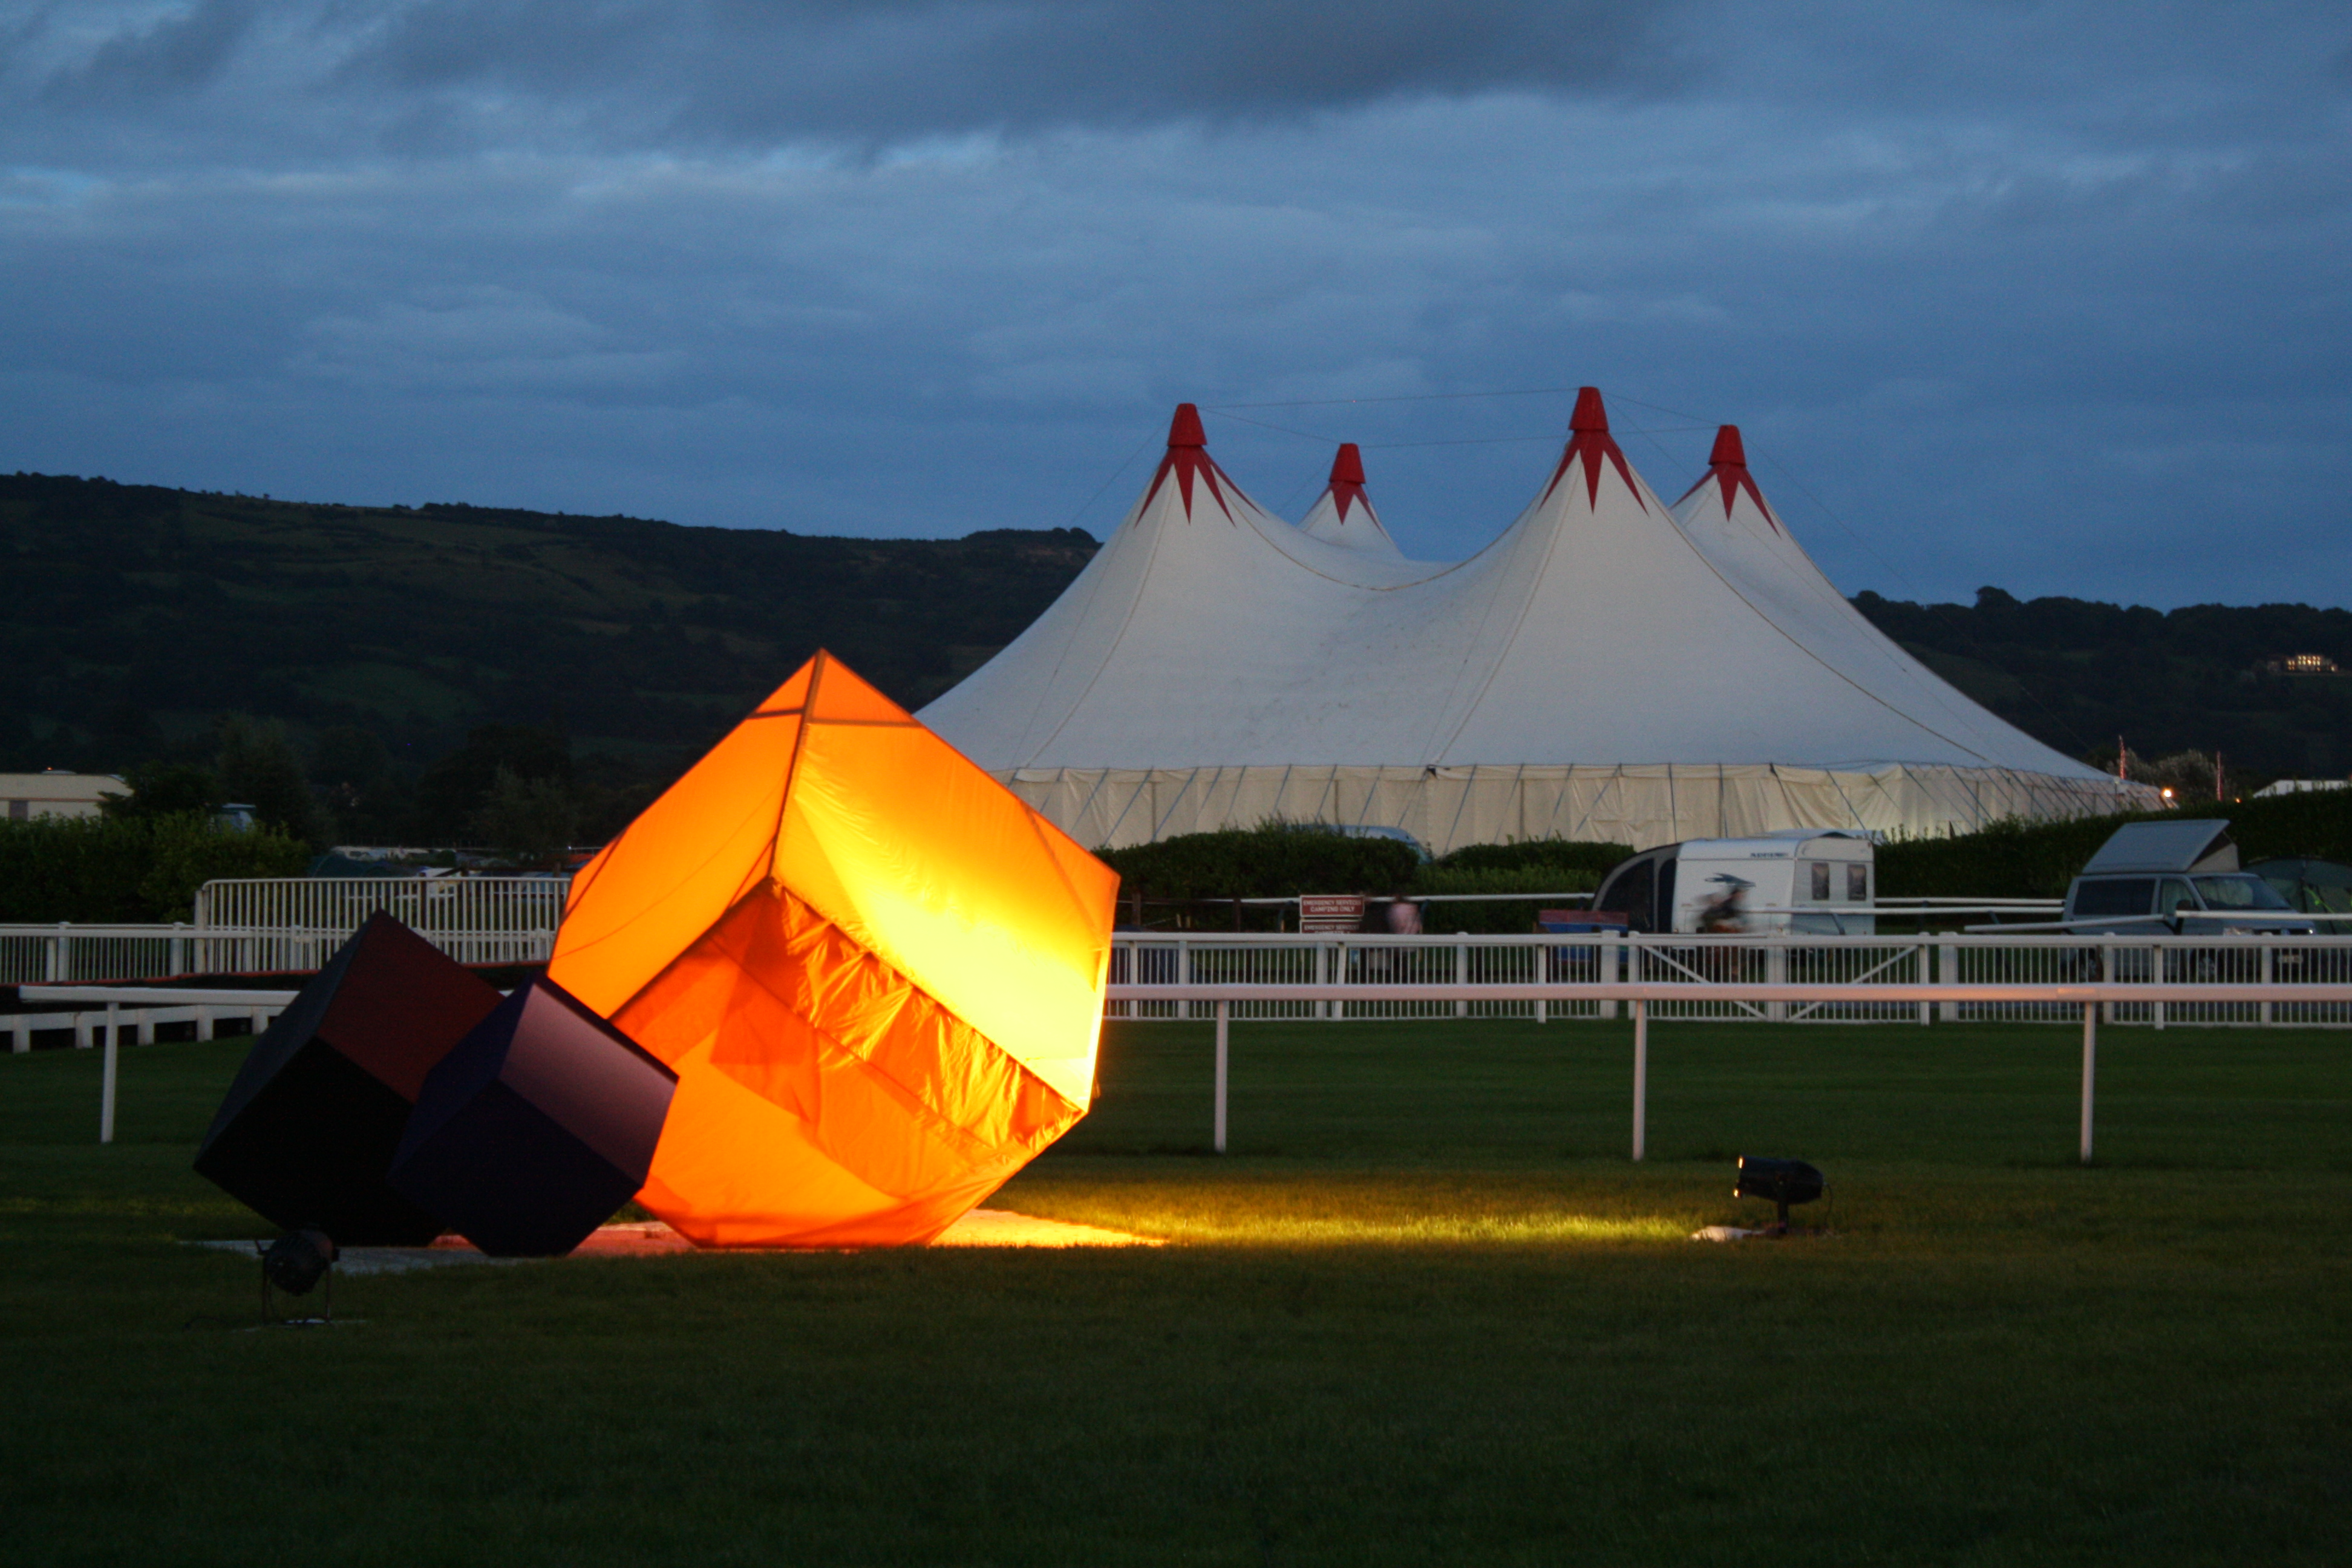 FileGreenbelt 2012 festival symbol and  Big Top  tent.jpg & File:Greenbelt 2012 festival symbol and